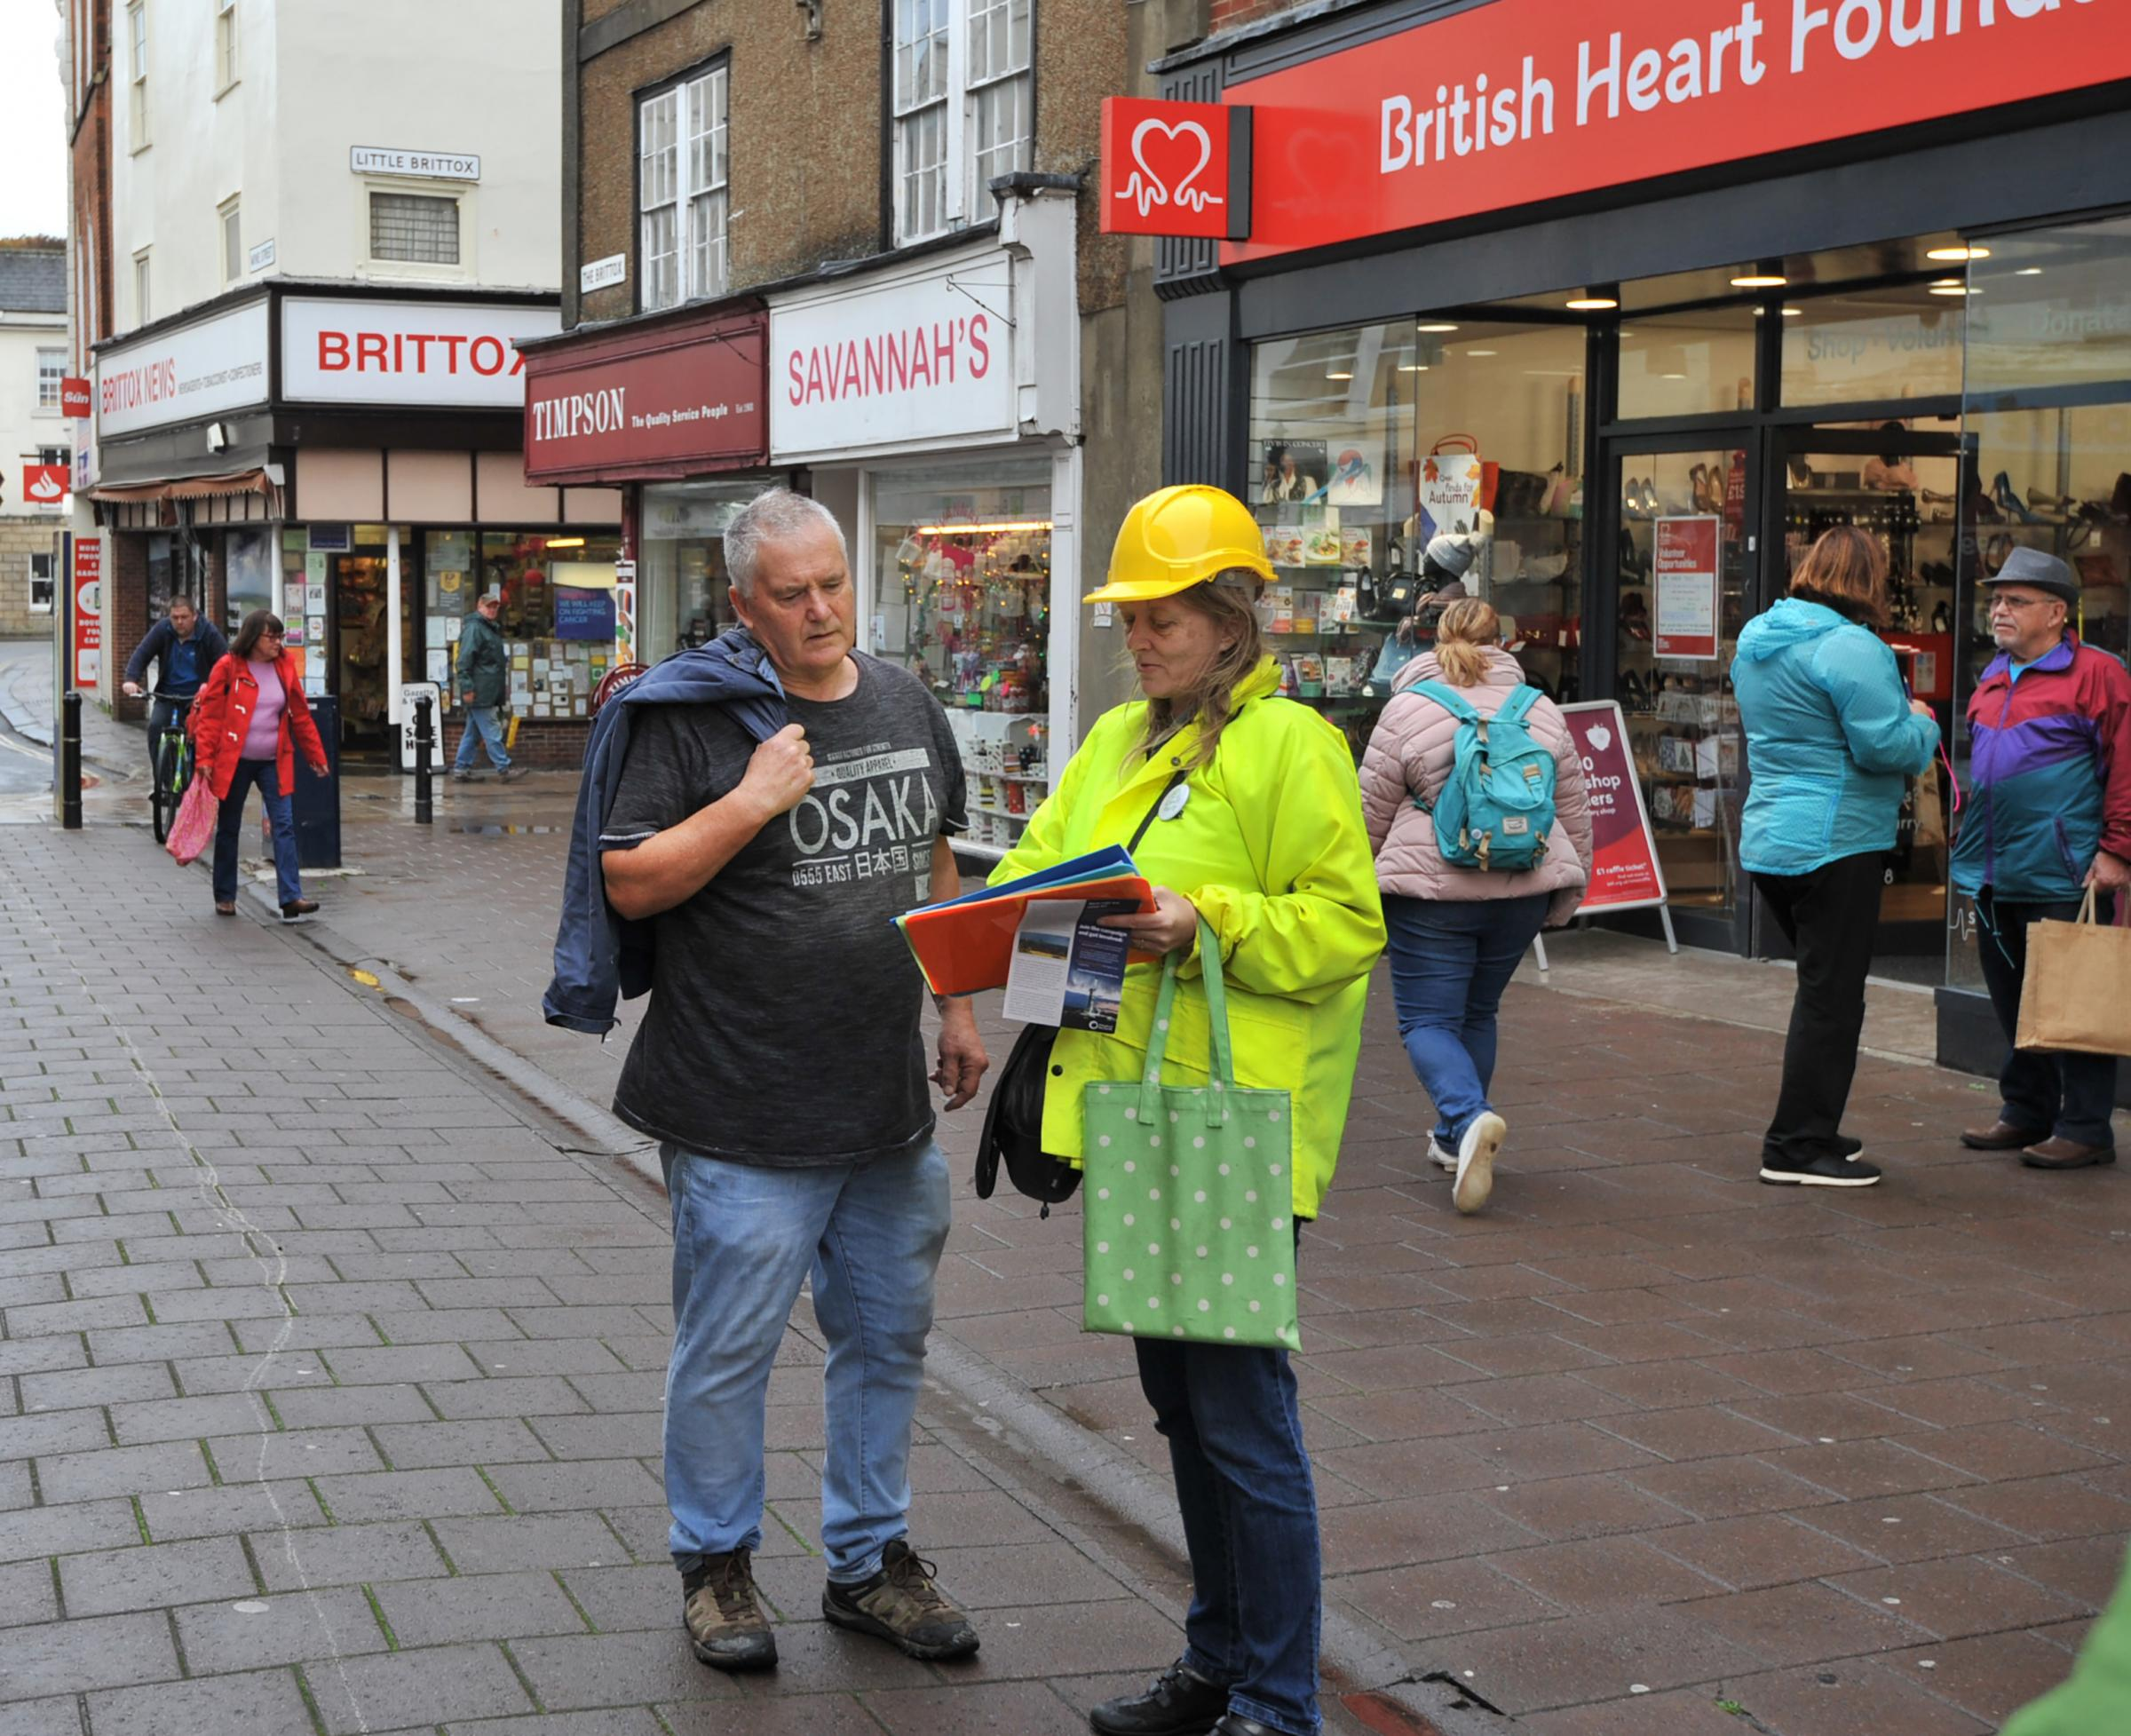 Fracking Protest.Emma Dawnay of the Green Party talks to s a shopper  in the Brittox Devizes. Photo Trevor Porter 59951 4..